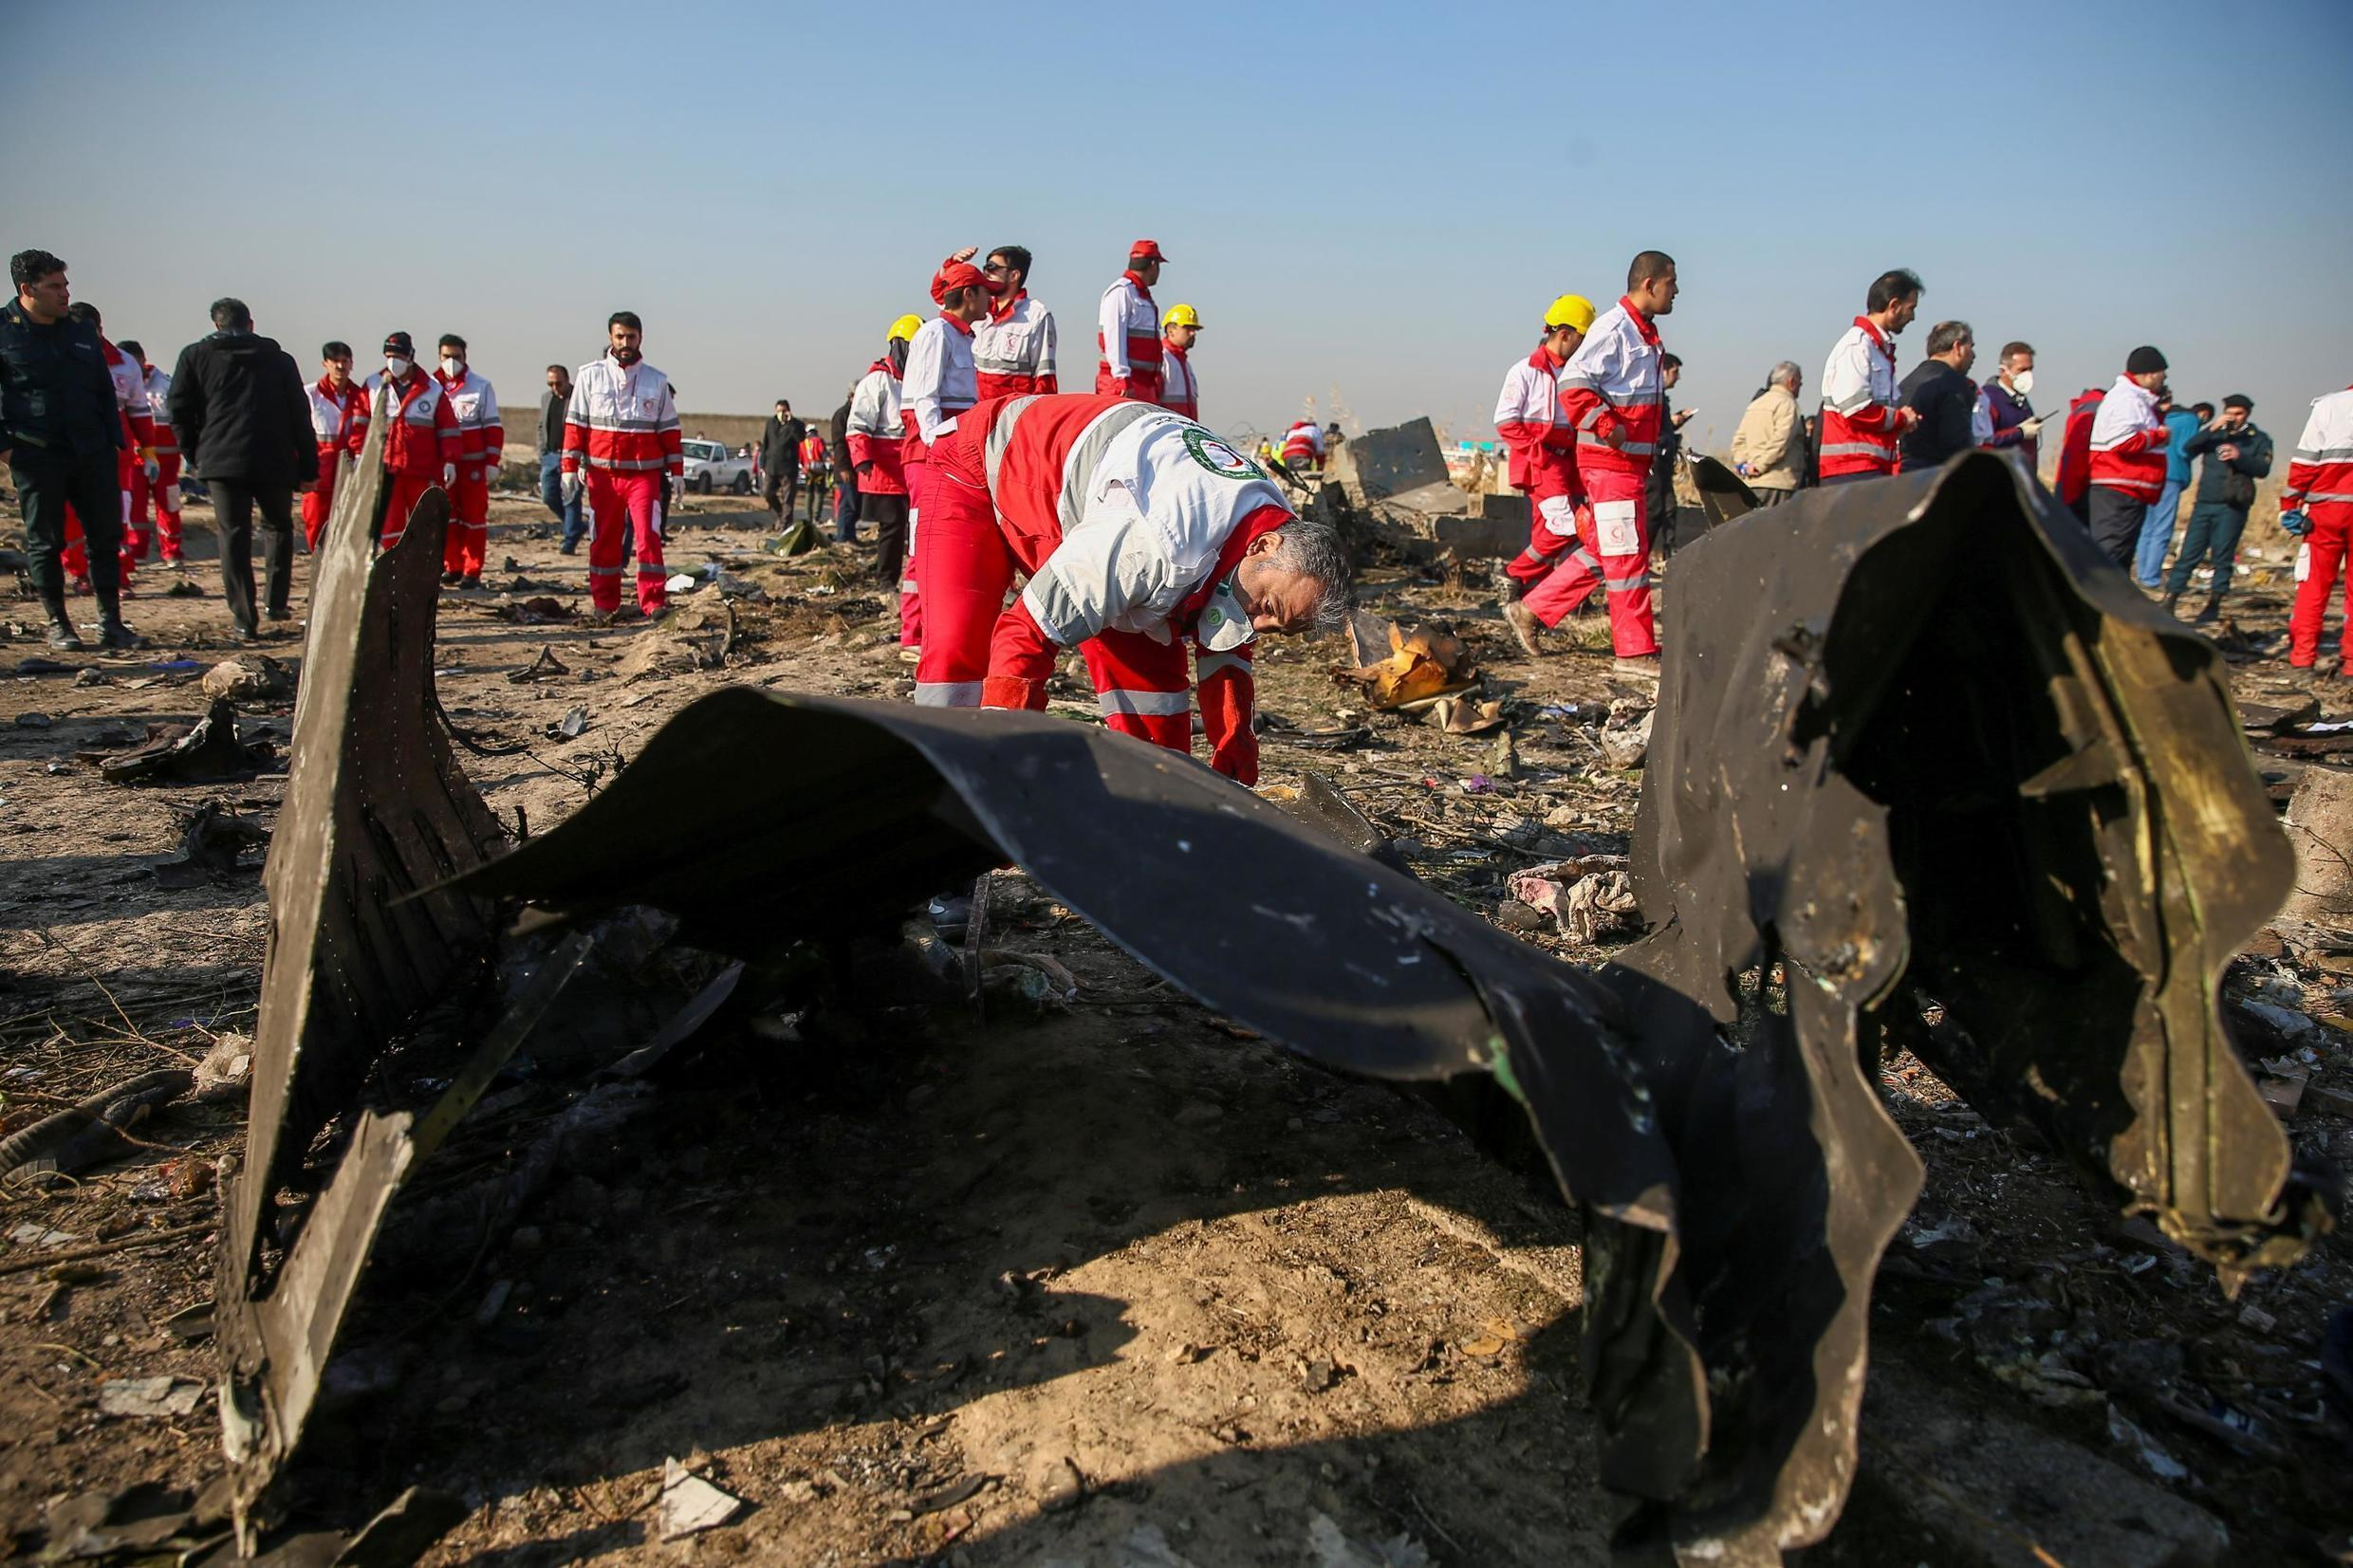 Red Crescent workers check the debris of the Ukraine International Airlines plane, which crashed after take-off from Iran's Imam Khomeini airport.